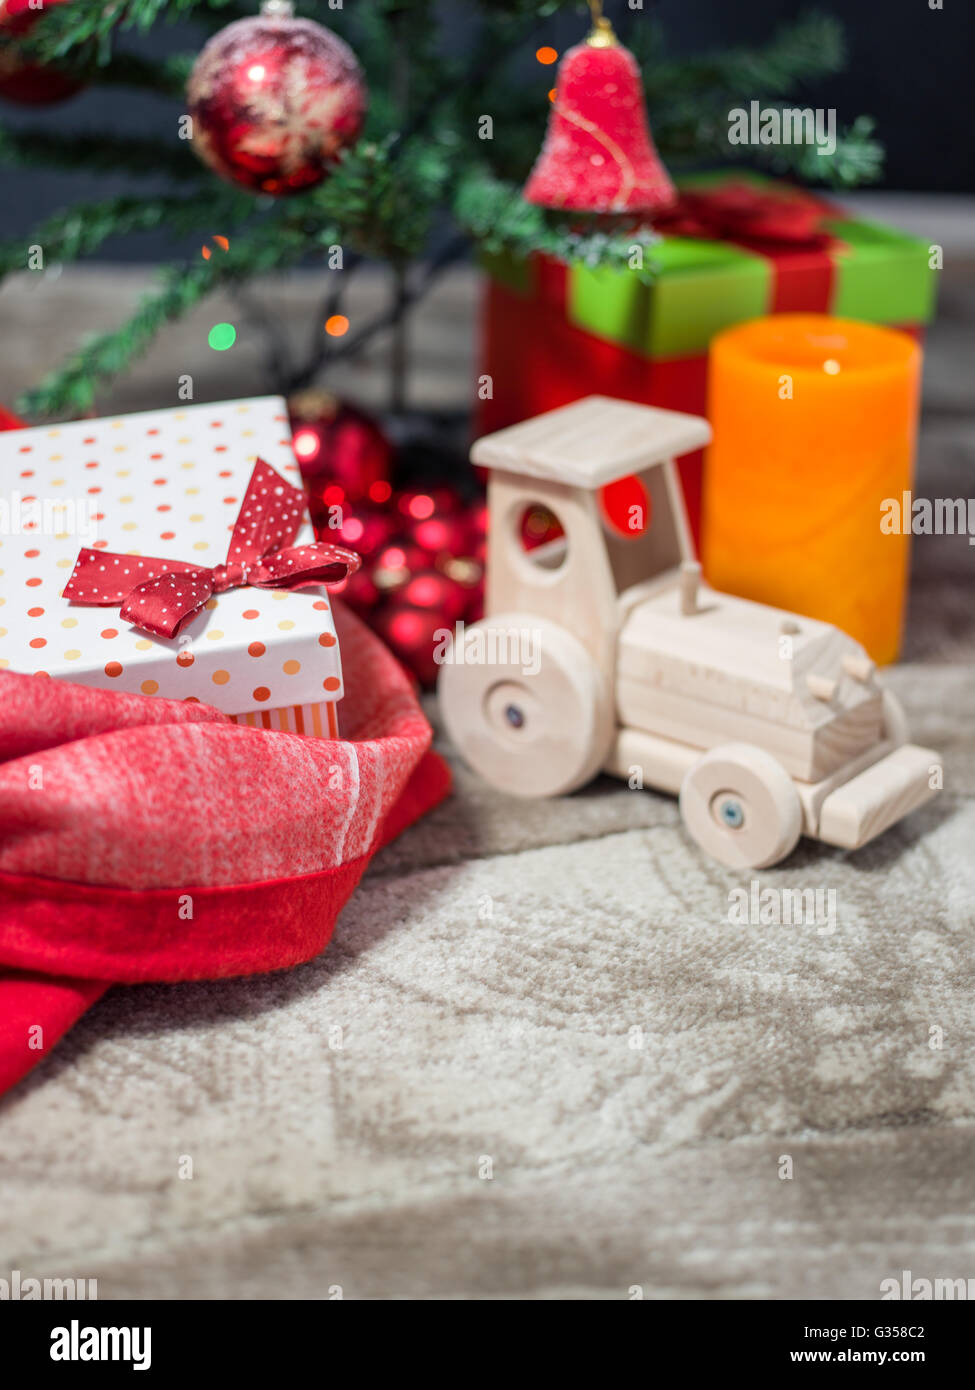 gift boxes under Christmas tree, Christmastime surprises, New Year eve concept - Stock Image